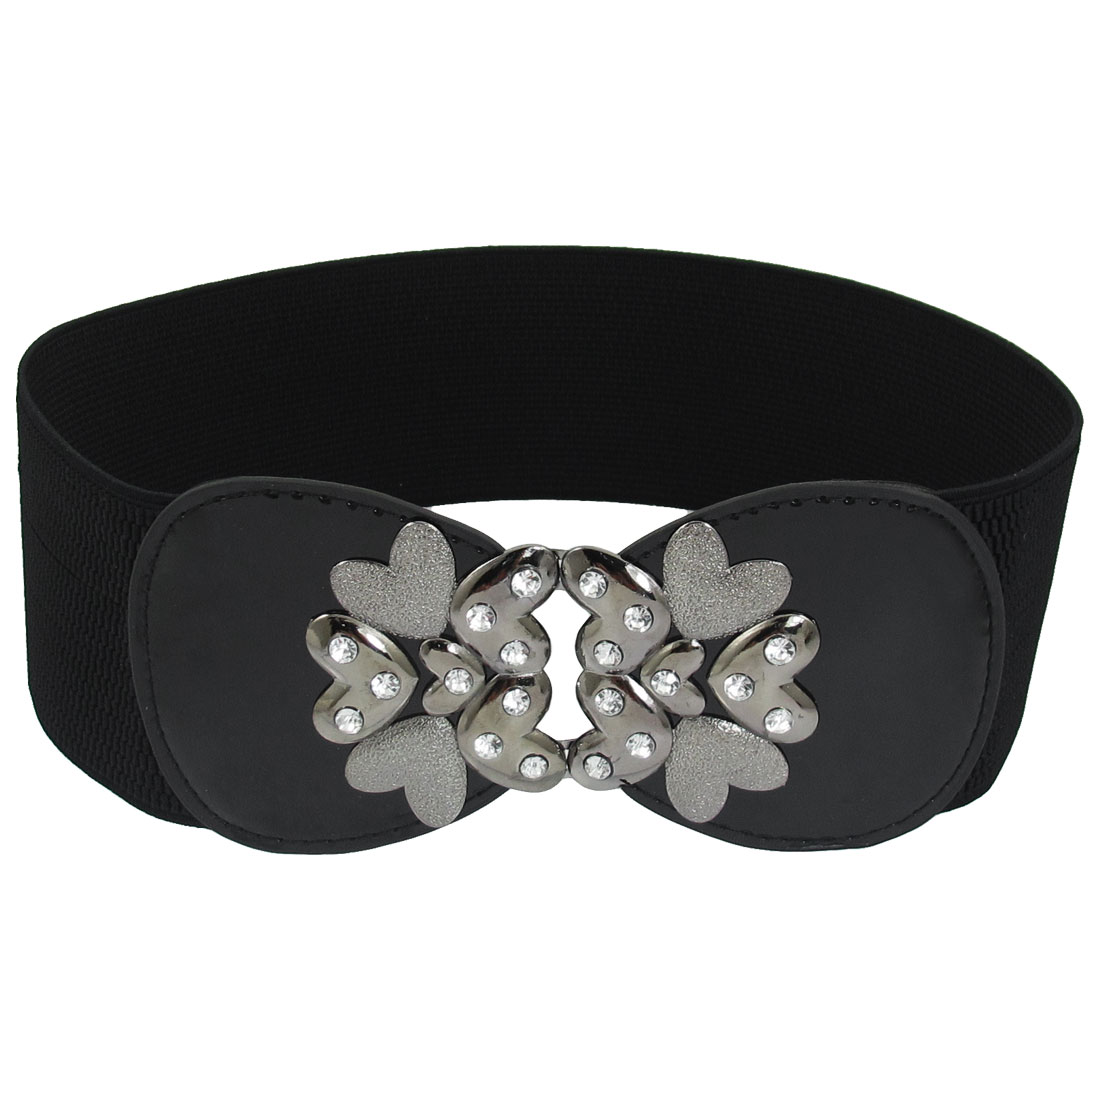 Black Faux Leather Decor Textured Pattern Stretchy Waistband for Ladies